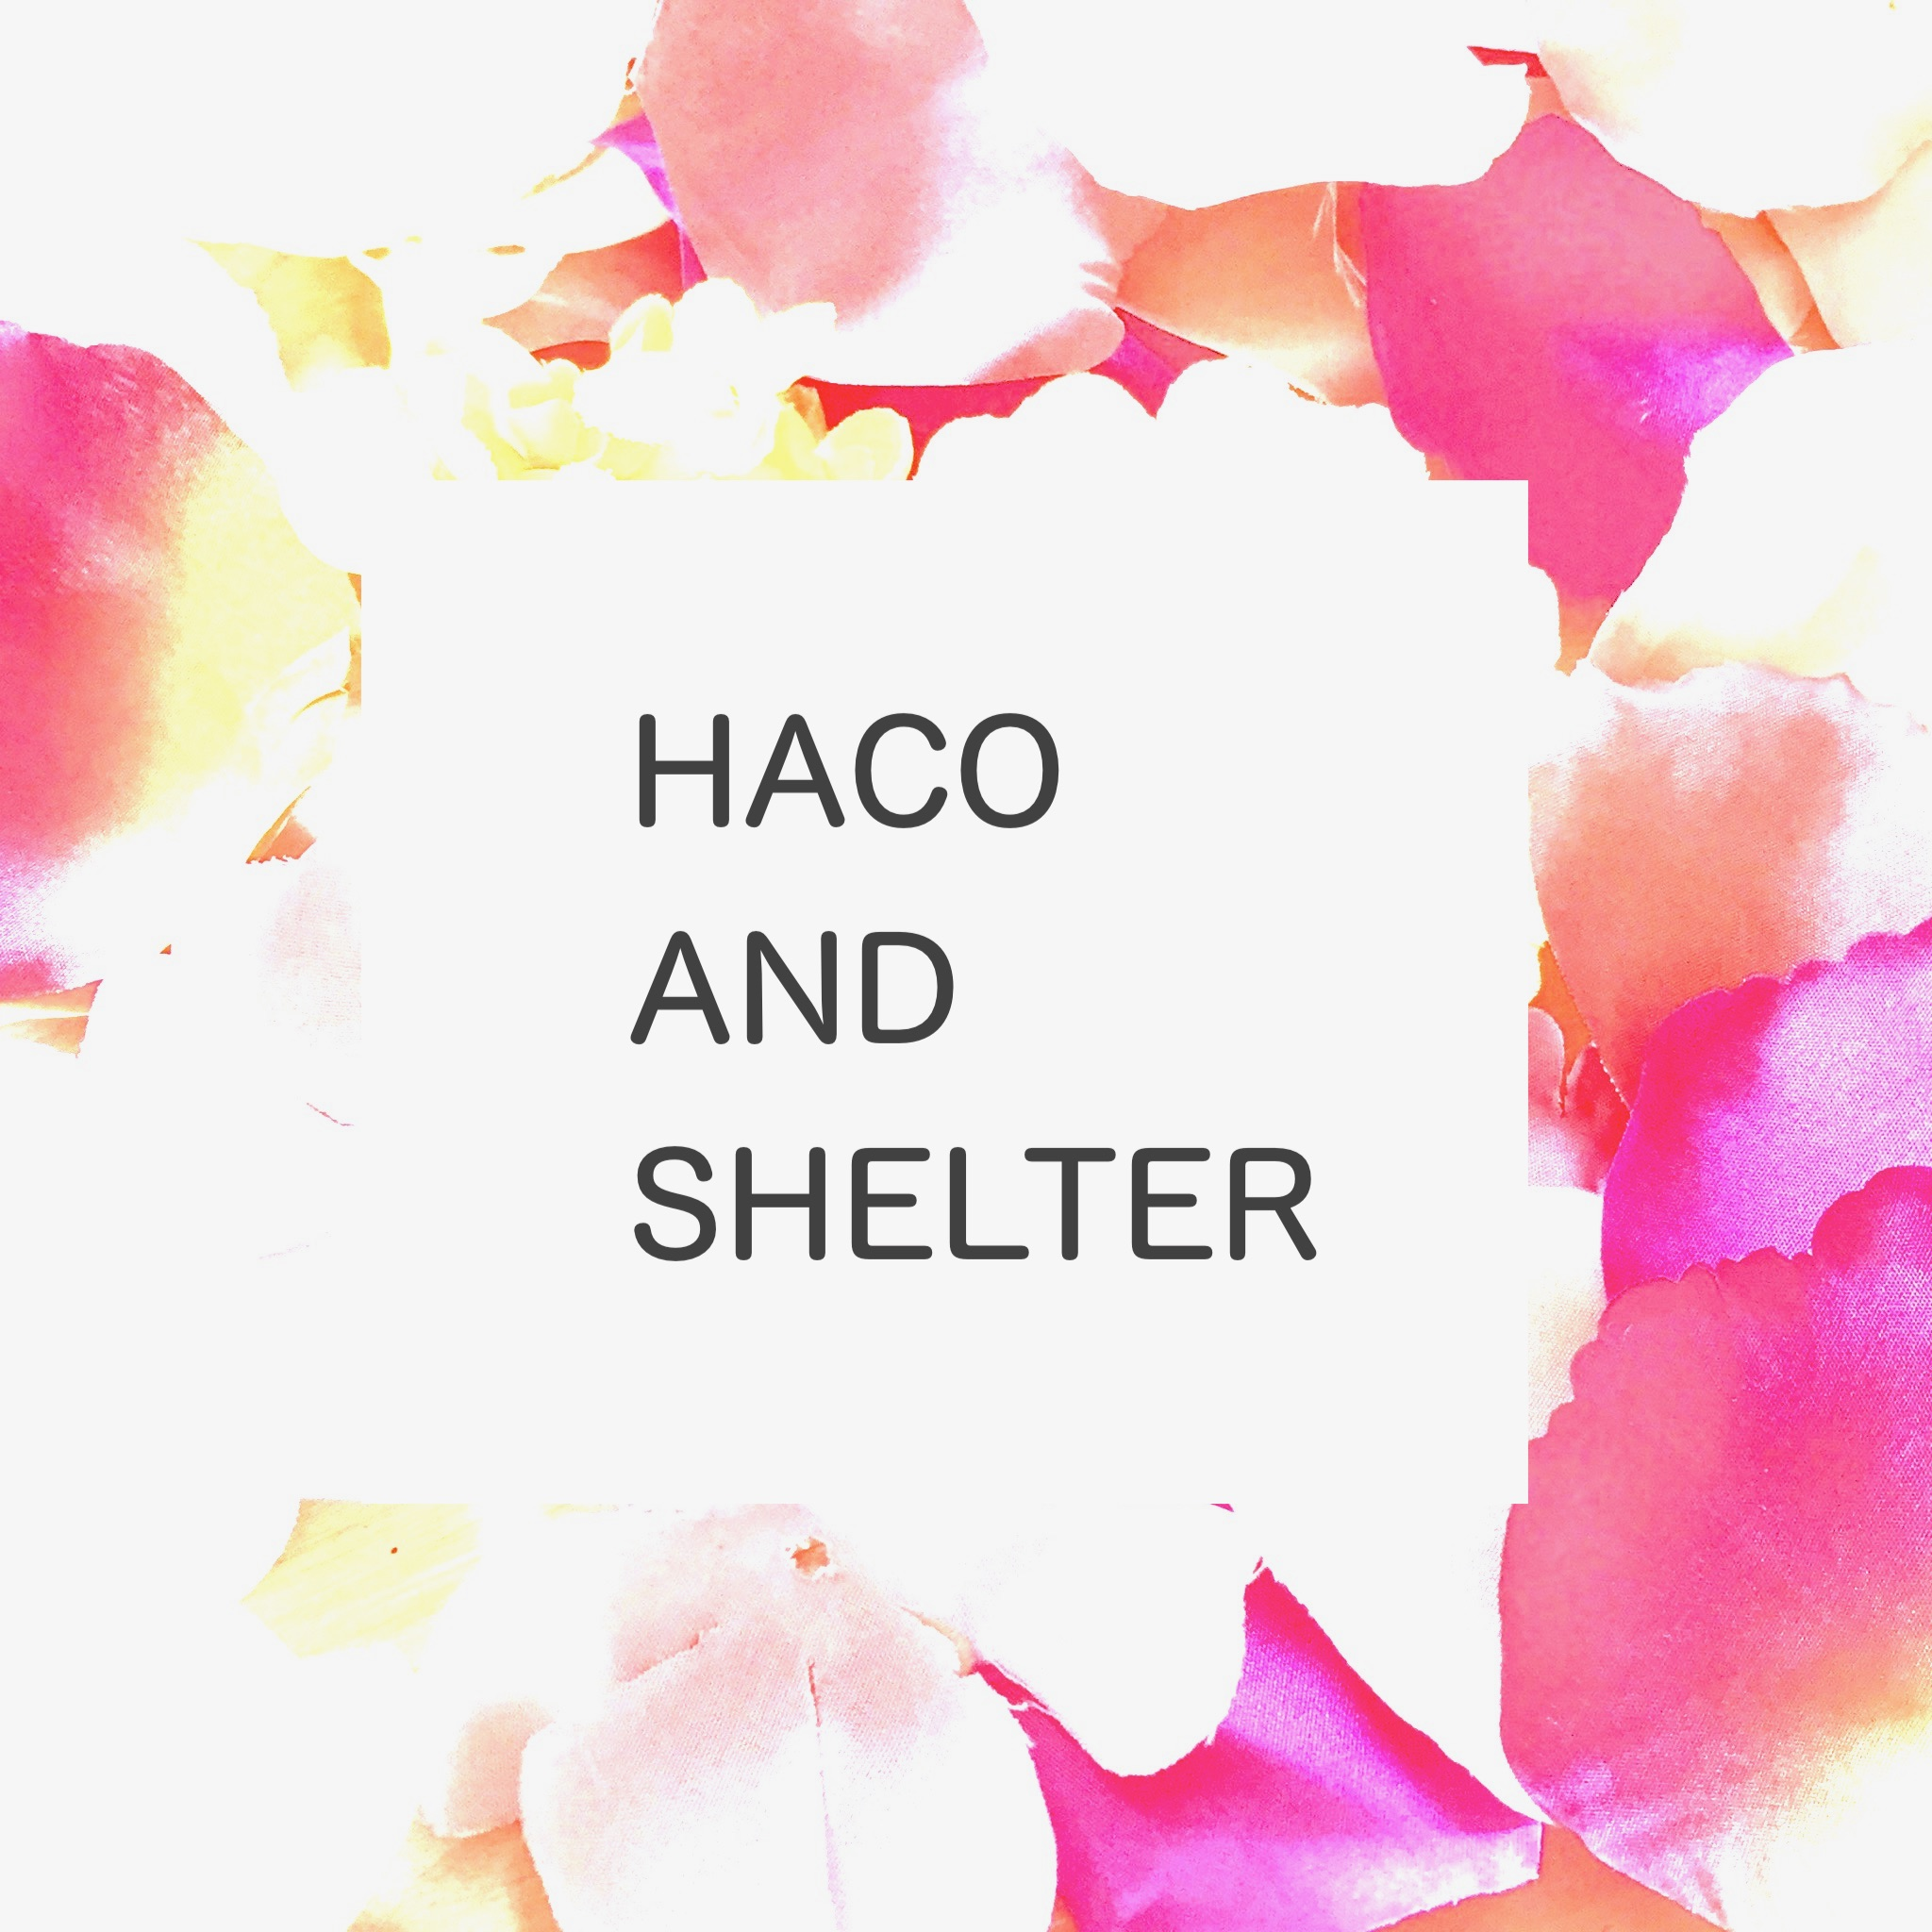 HACO AND SHELTER